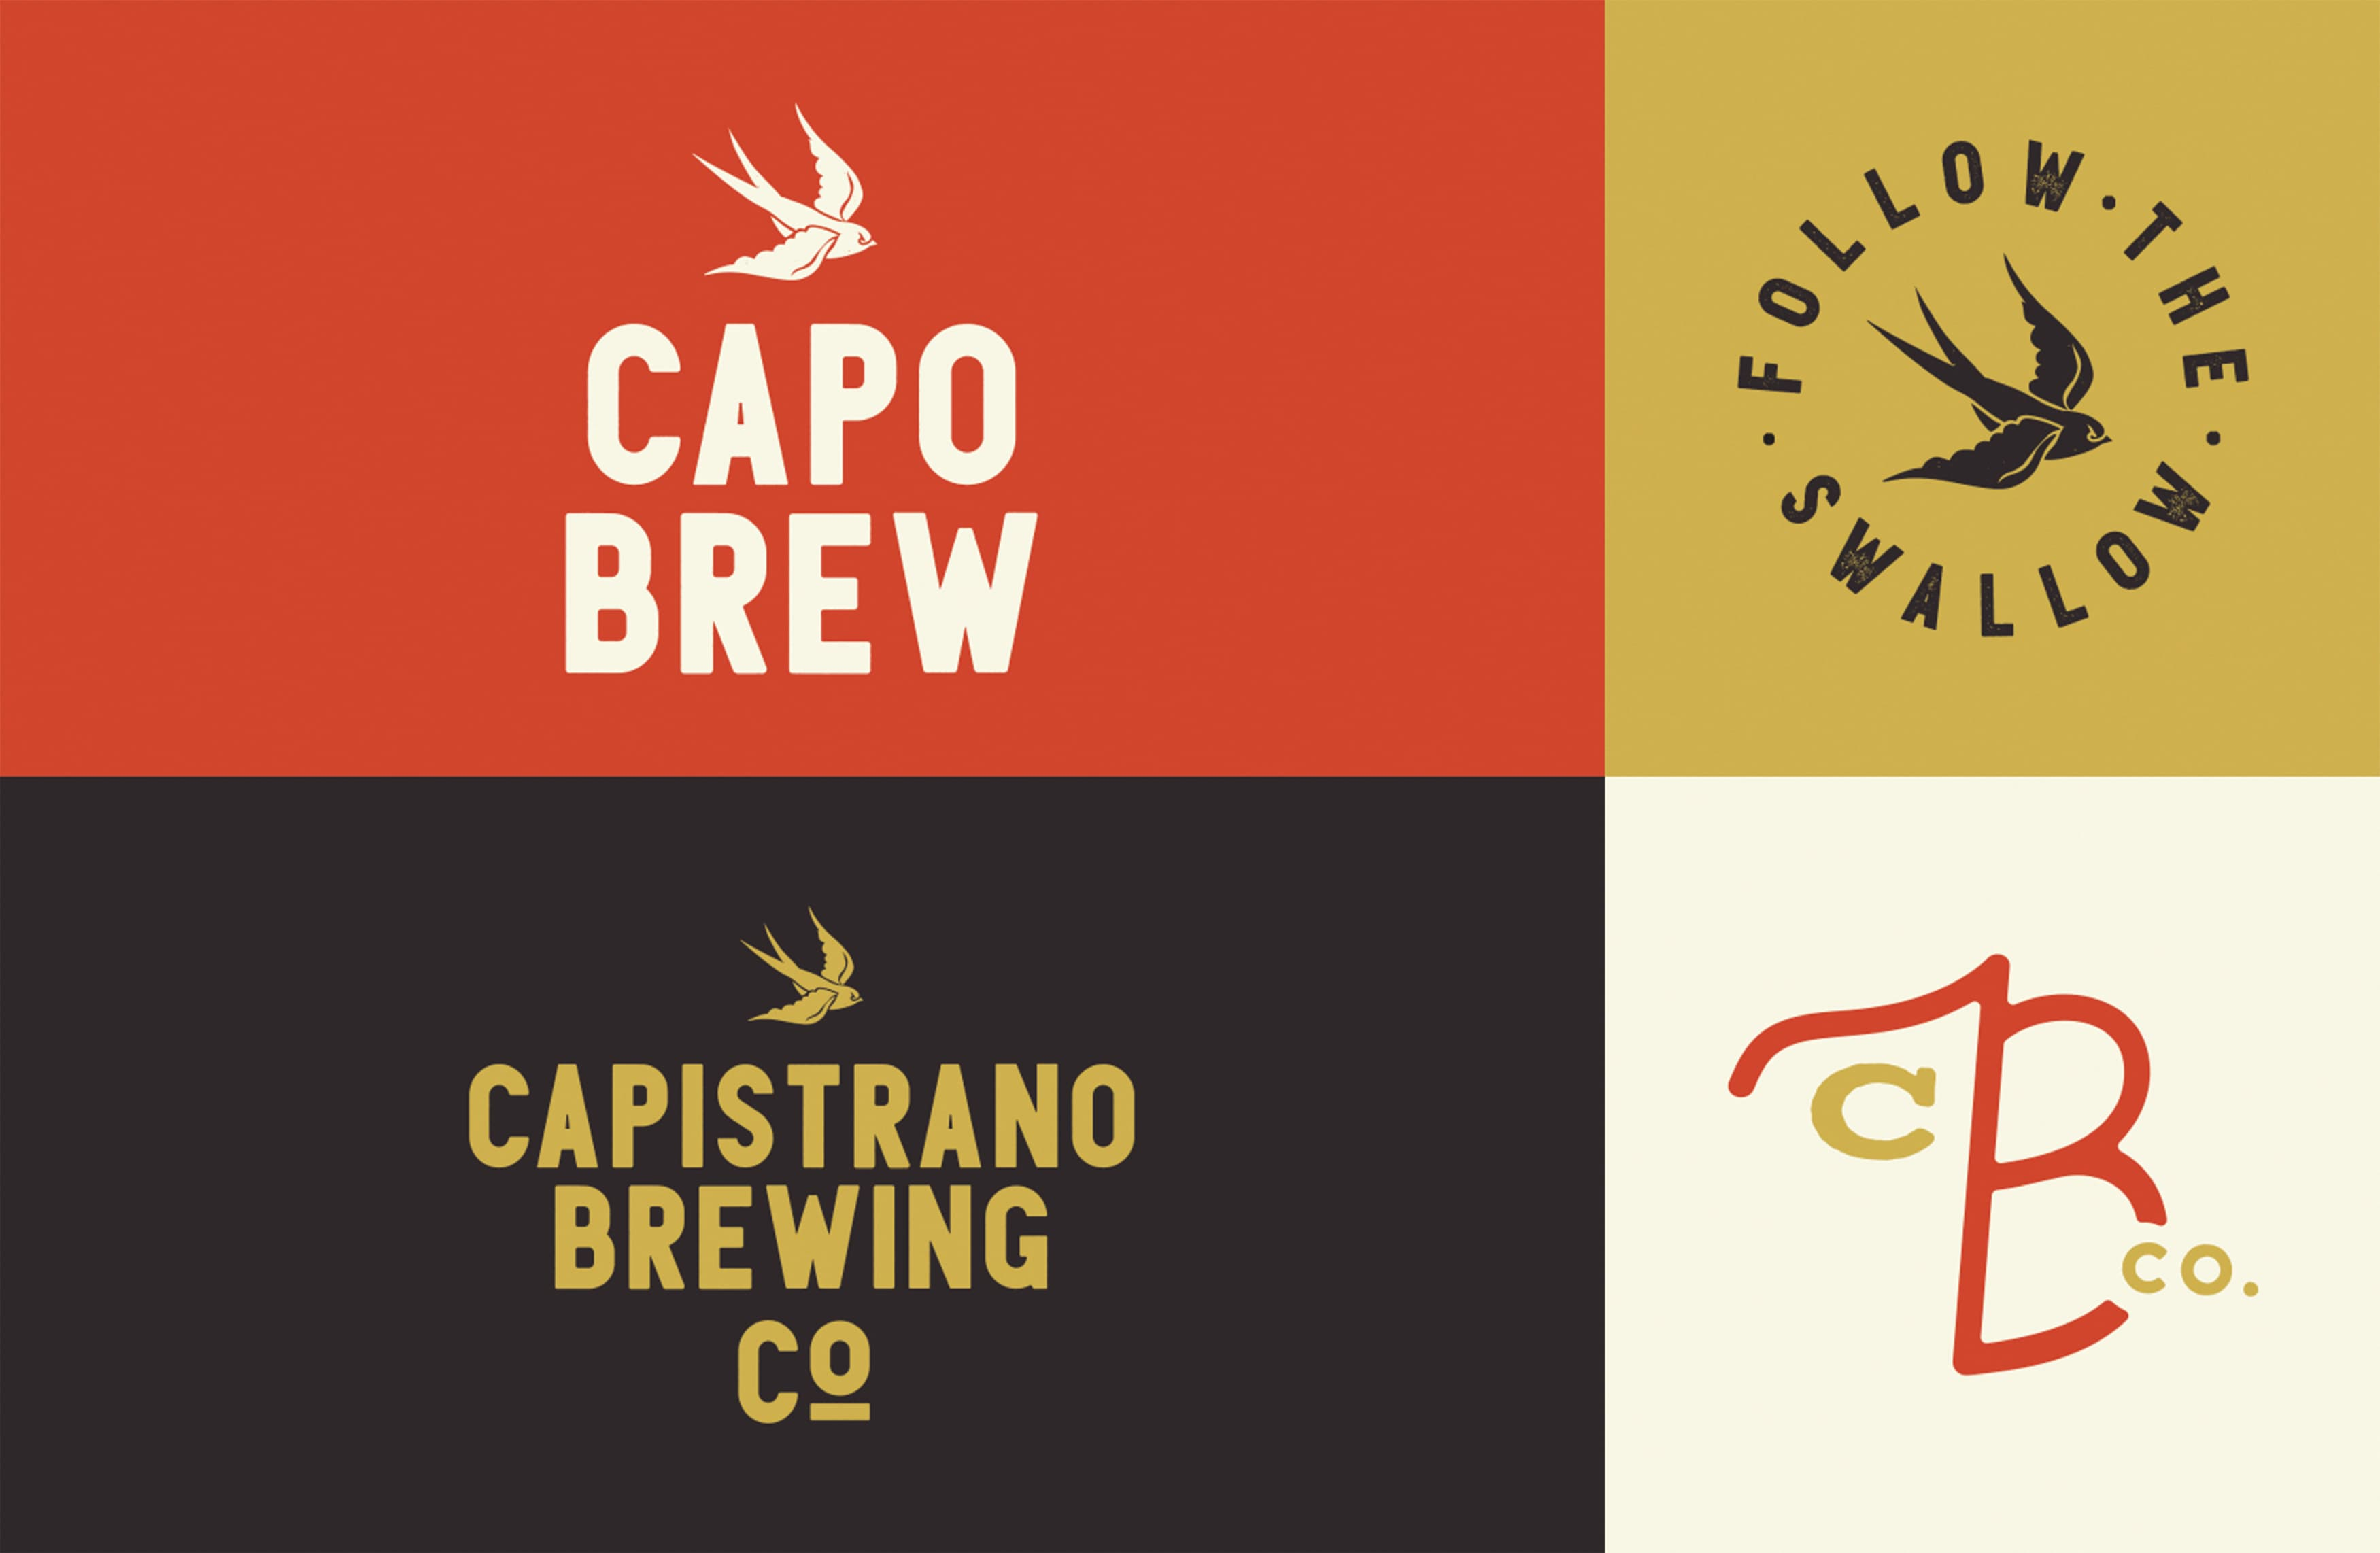 Capo Brew, a brewery located in the historic San Juan Capistrano, California, worked with RSM Design to craft a brand identity that conveyed its historic roots and cowboy personality.